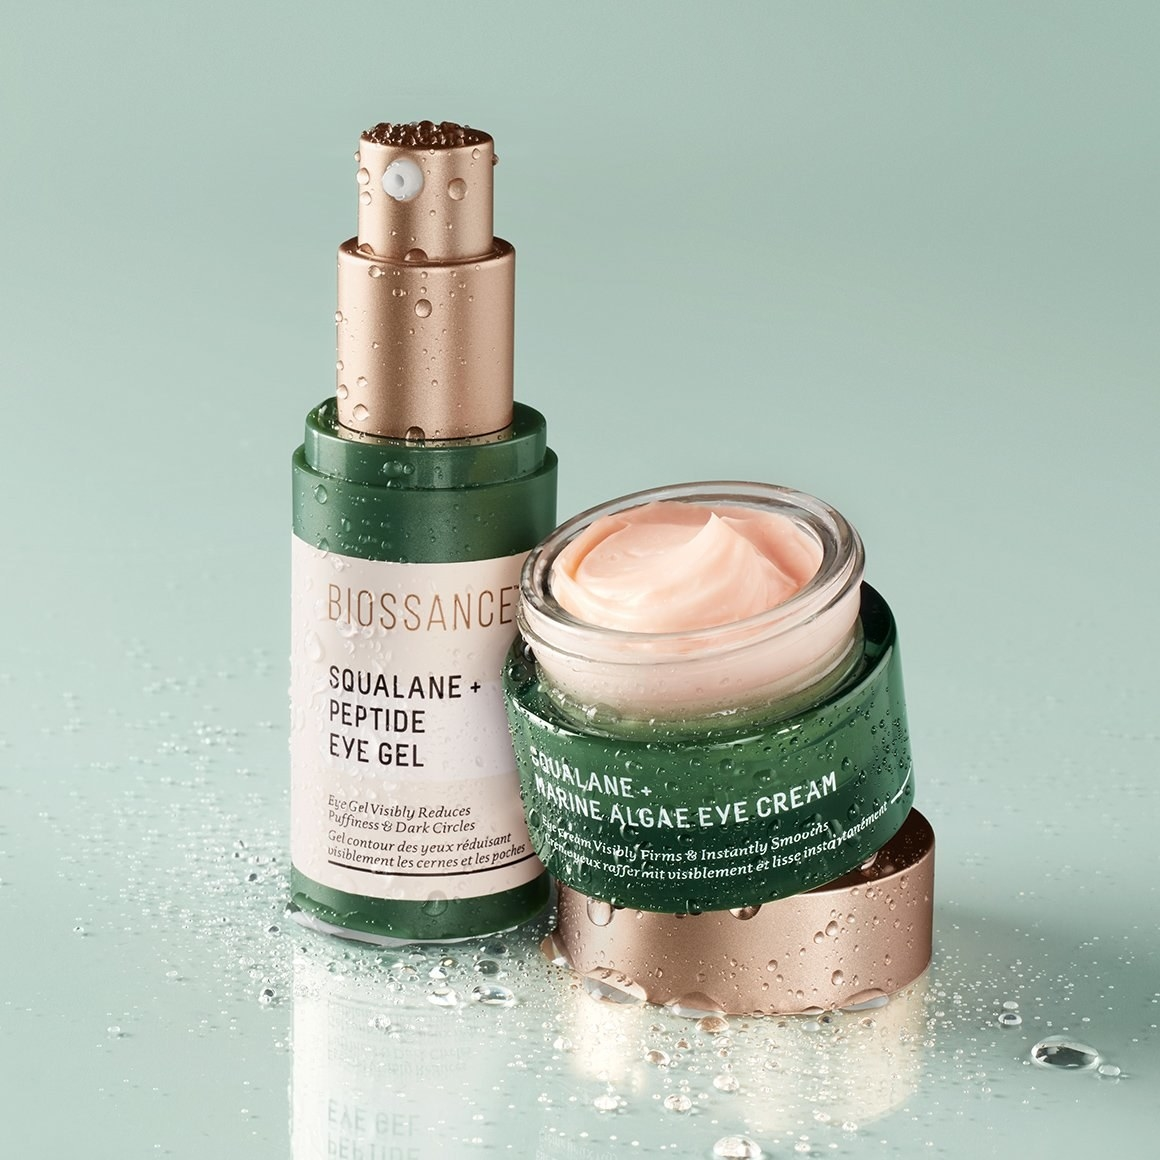 eye cream and eye gel containers